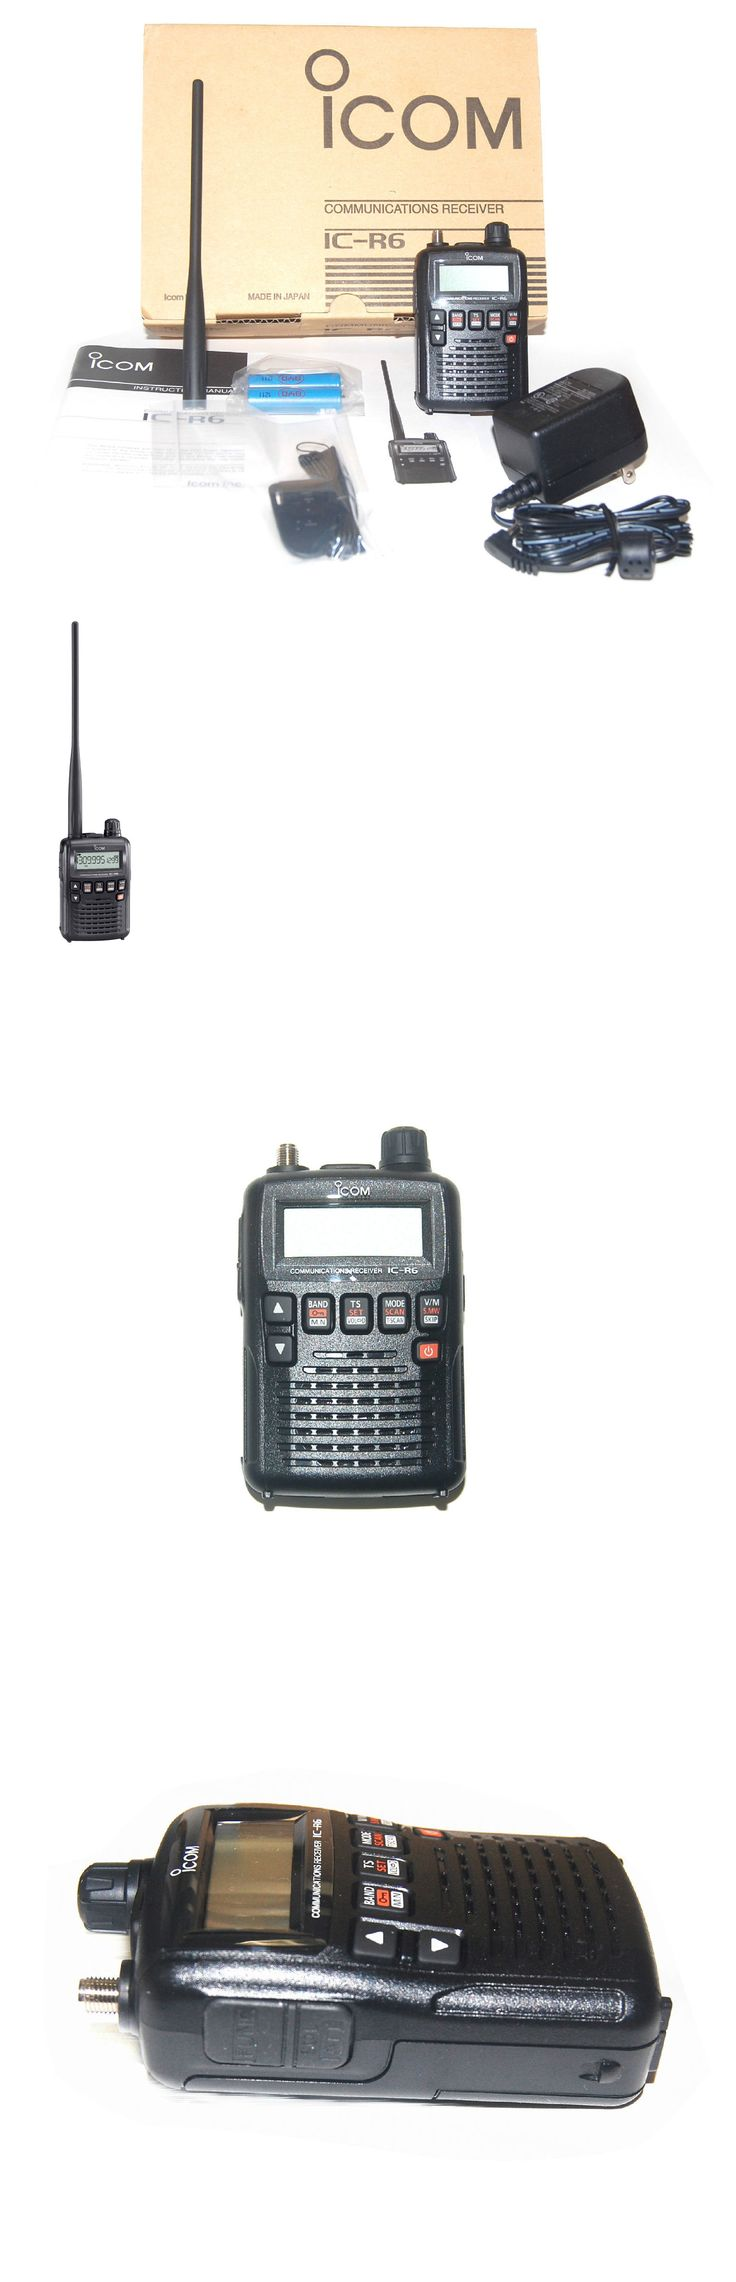 Ham Radio Receivers: New Icom Ic-R6-20 Ipx2 Mil-Std-810 Exp Wide Band Handheld Scanner Receiver Radio -> BUY IT NOW ONLY: $236.95 on eBay!